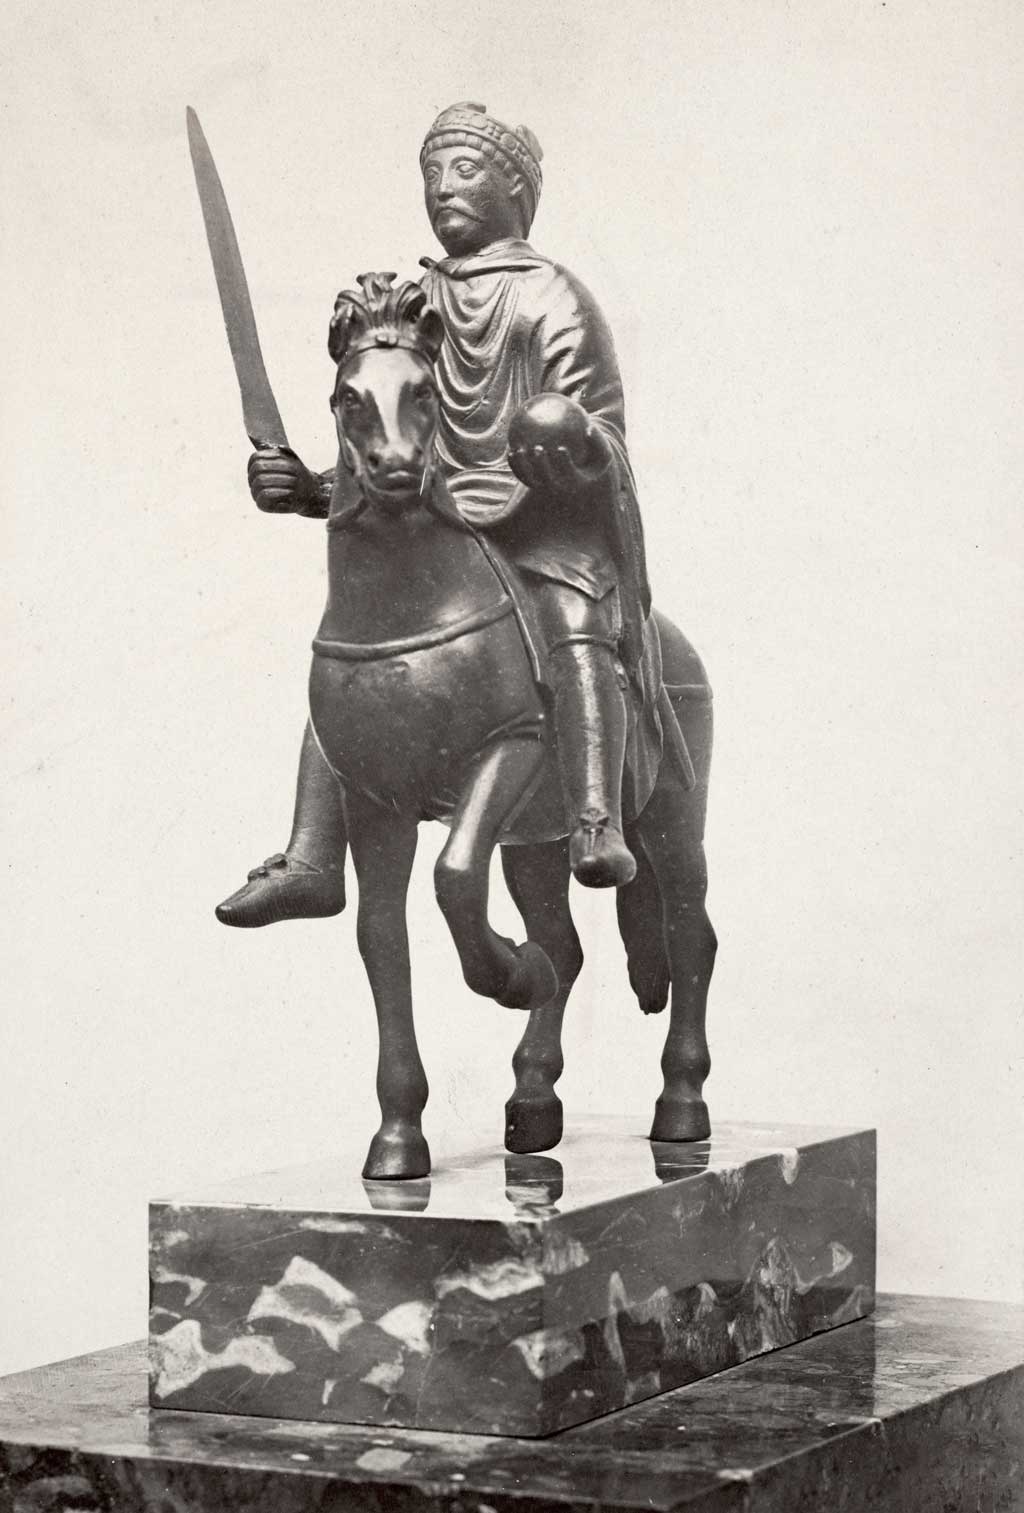 Statue of a Carolingian king, possibly Charlemagne, riding on horseback and carrying a sword in his right hand and a royal orb in his left hand (c. 870)